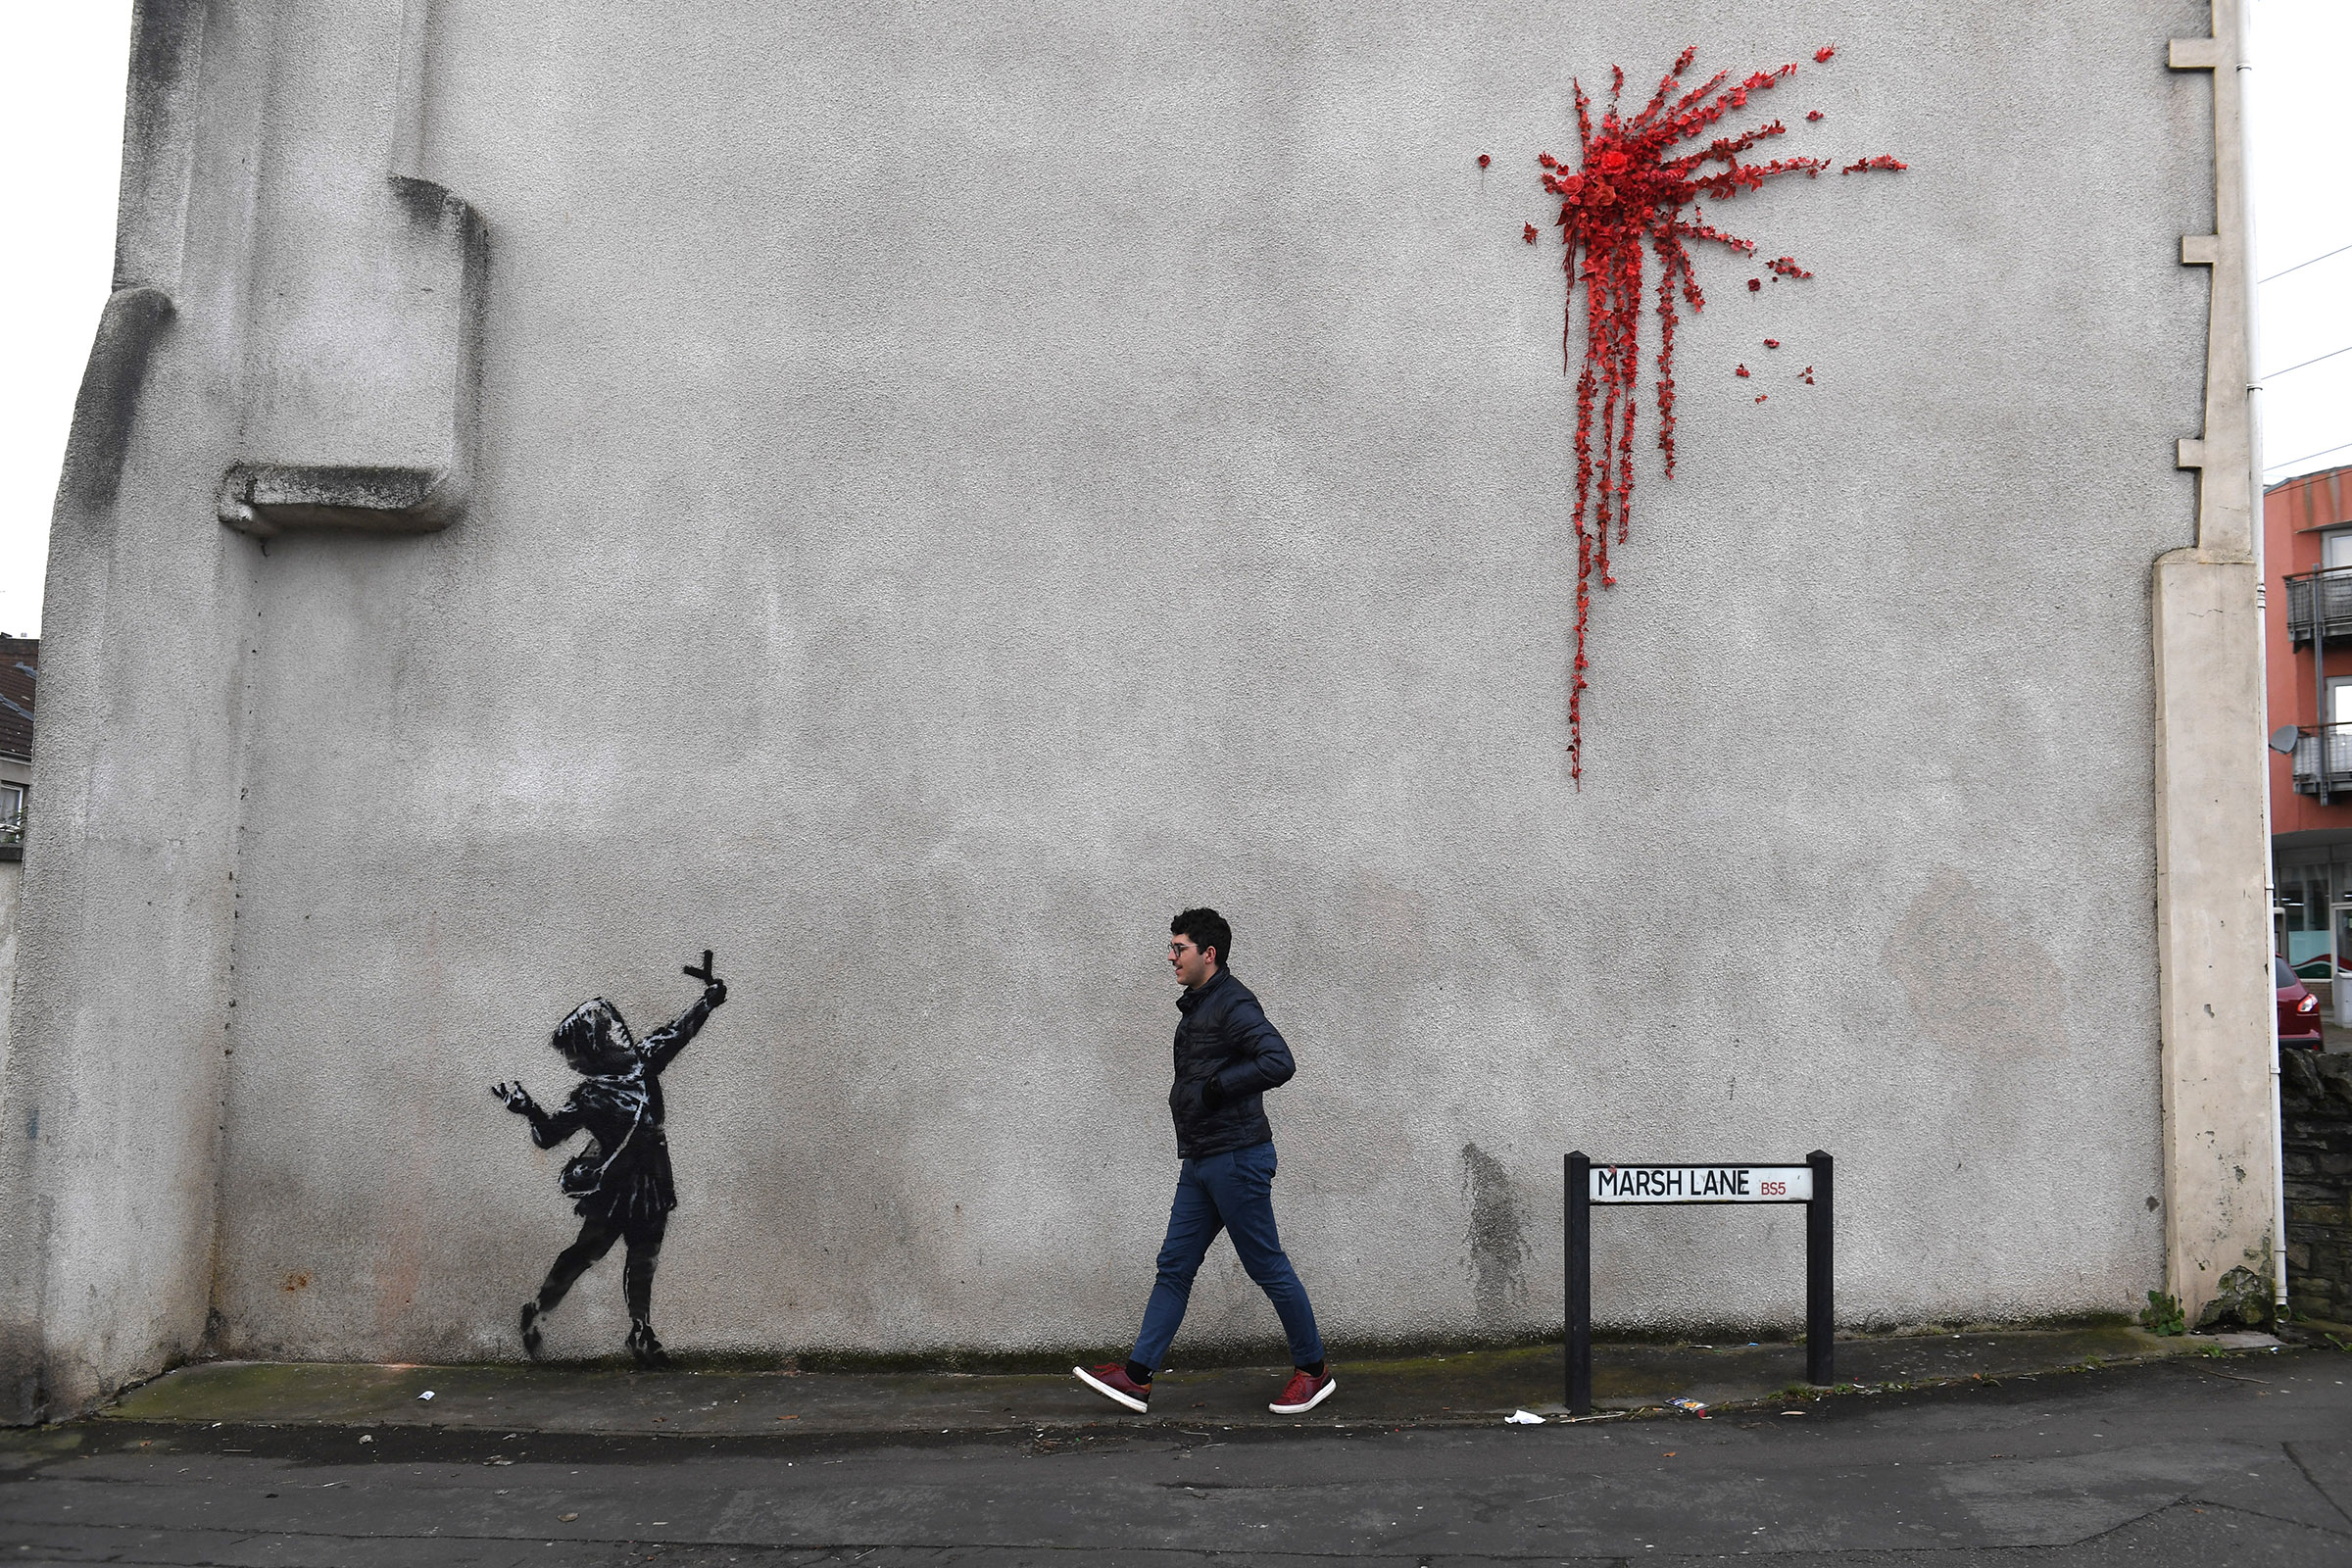 A member of the public walks past the new Banksy art in Bristol, England on Feb. 14, 2020.